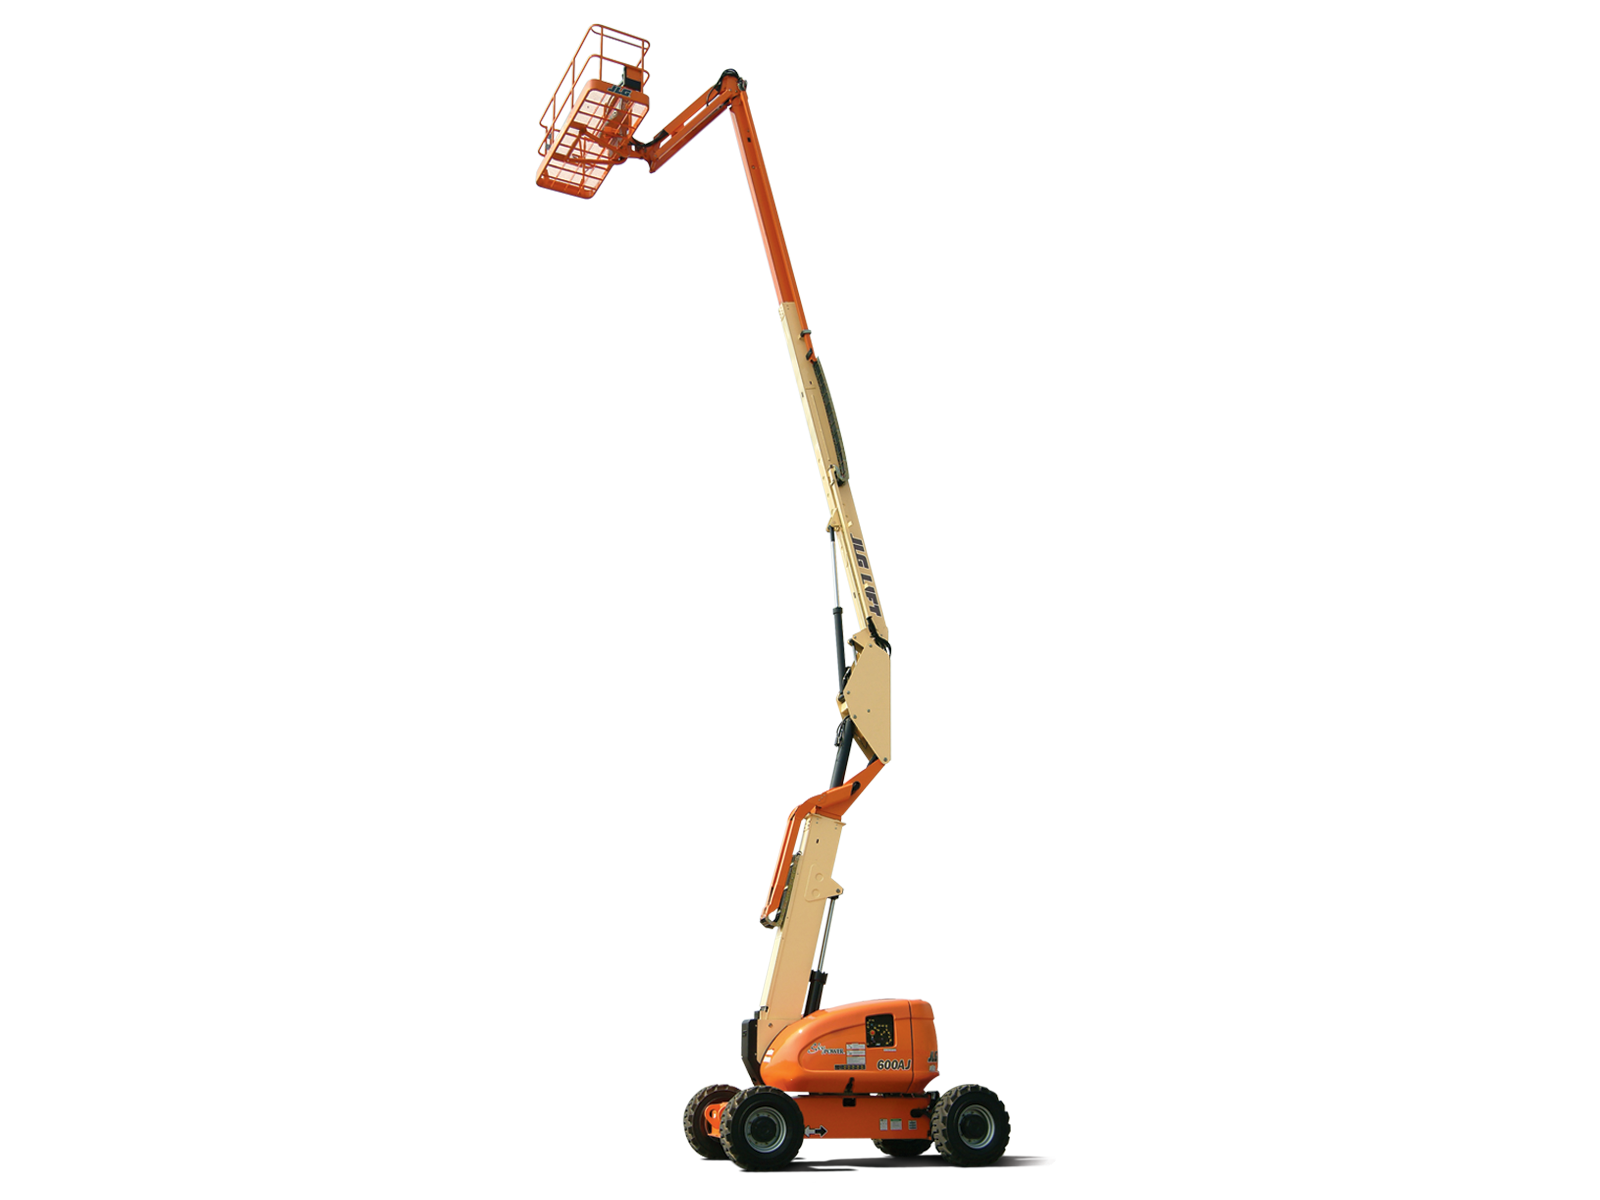 600aj gallery silo?mw=320?w=100 diagrams 603390 jlg scissor lift wiring diagram boom lift jlg 40h wiring diagram at creativeand.co